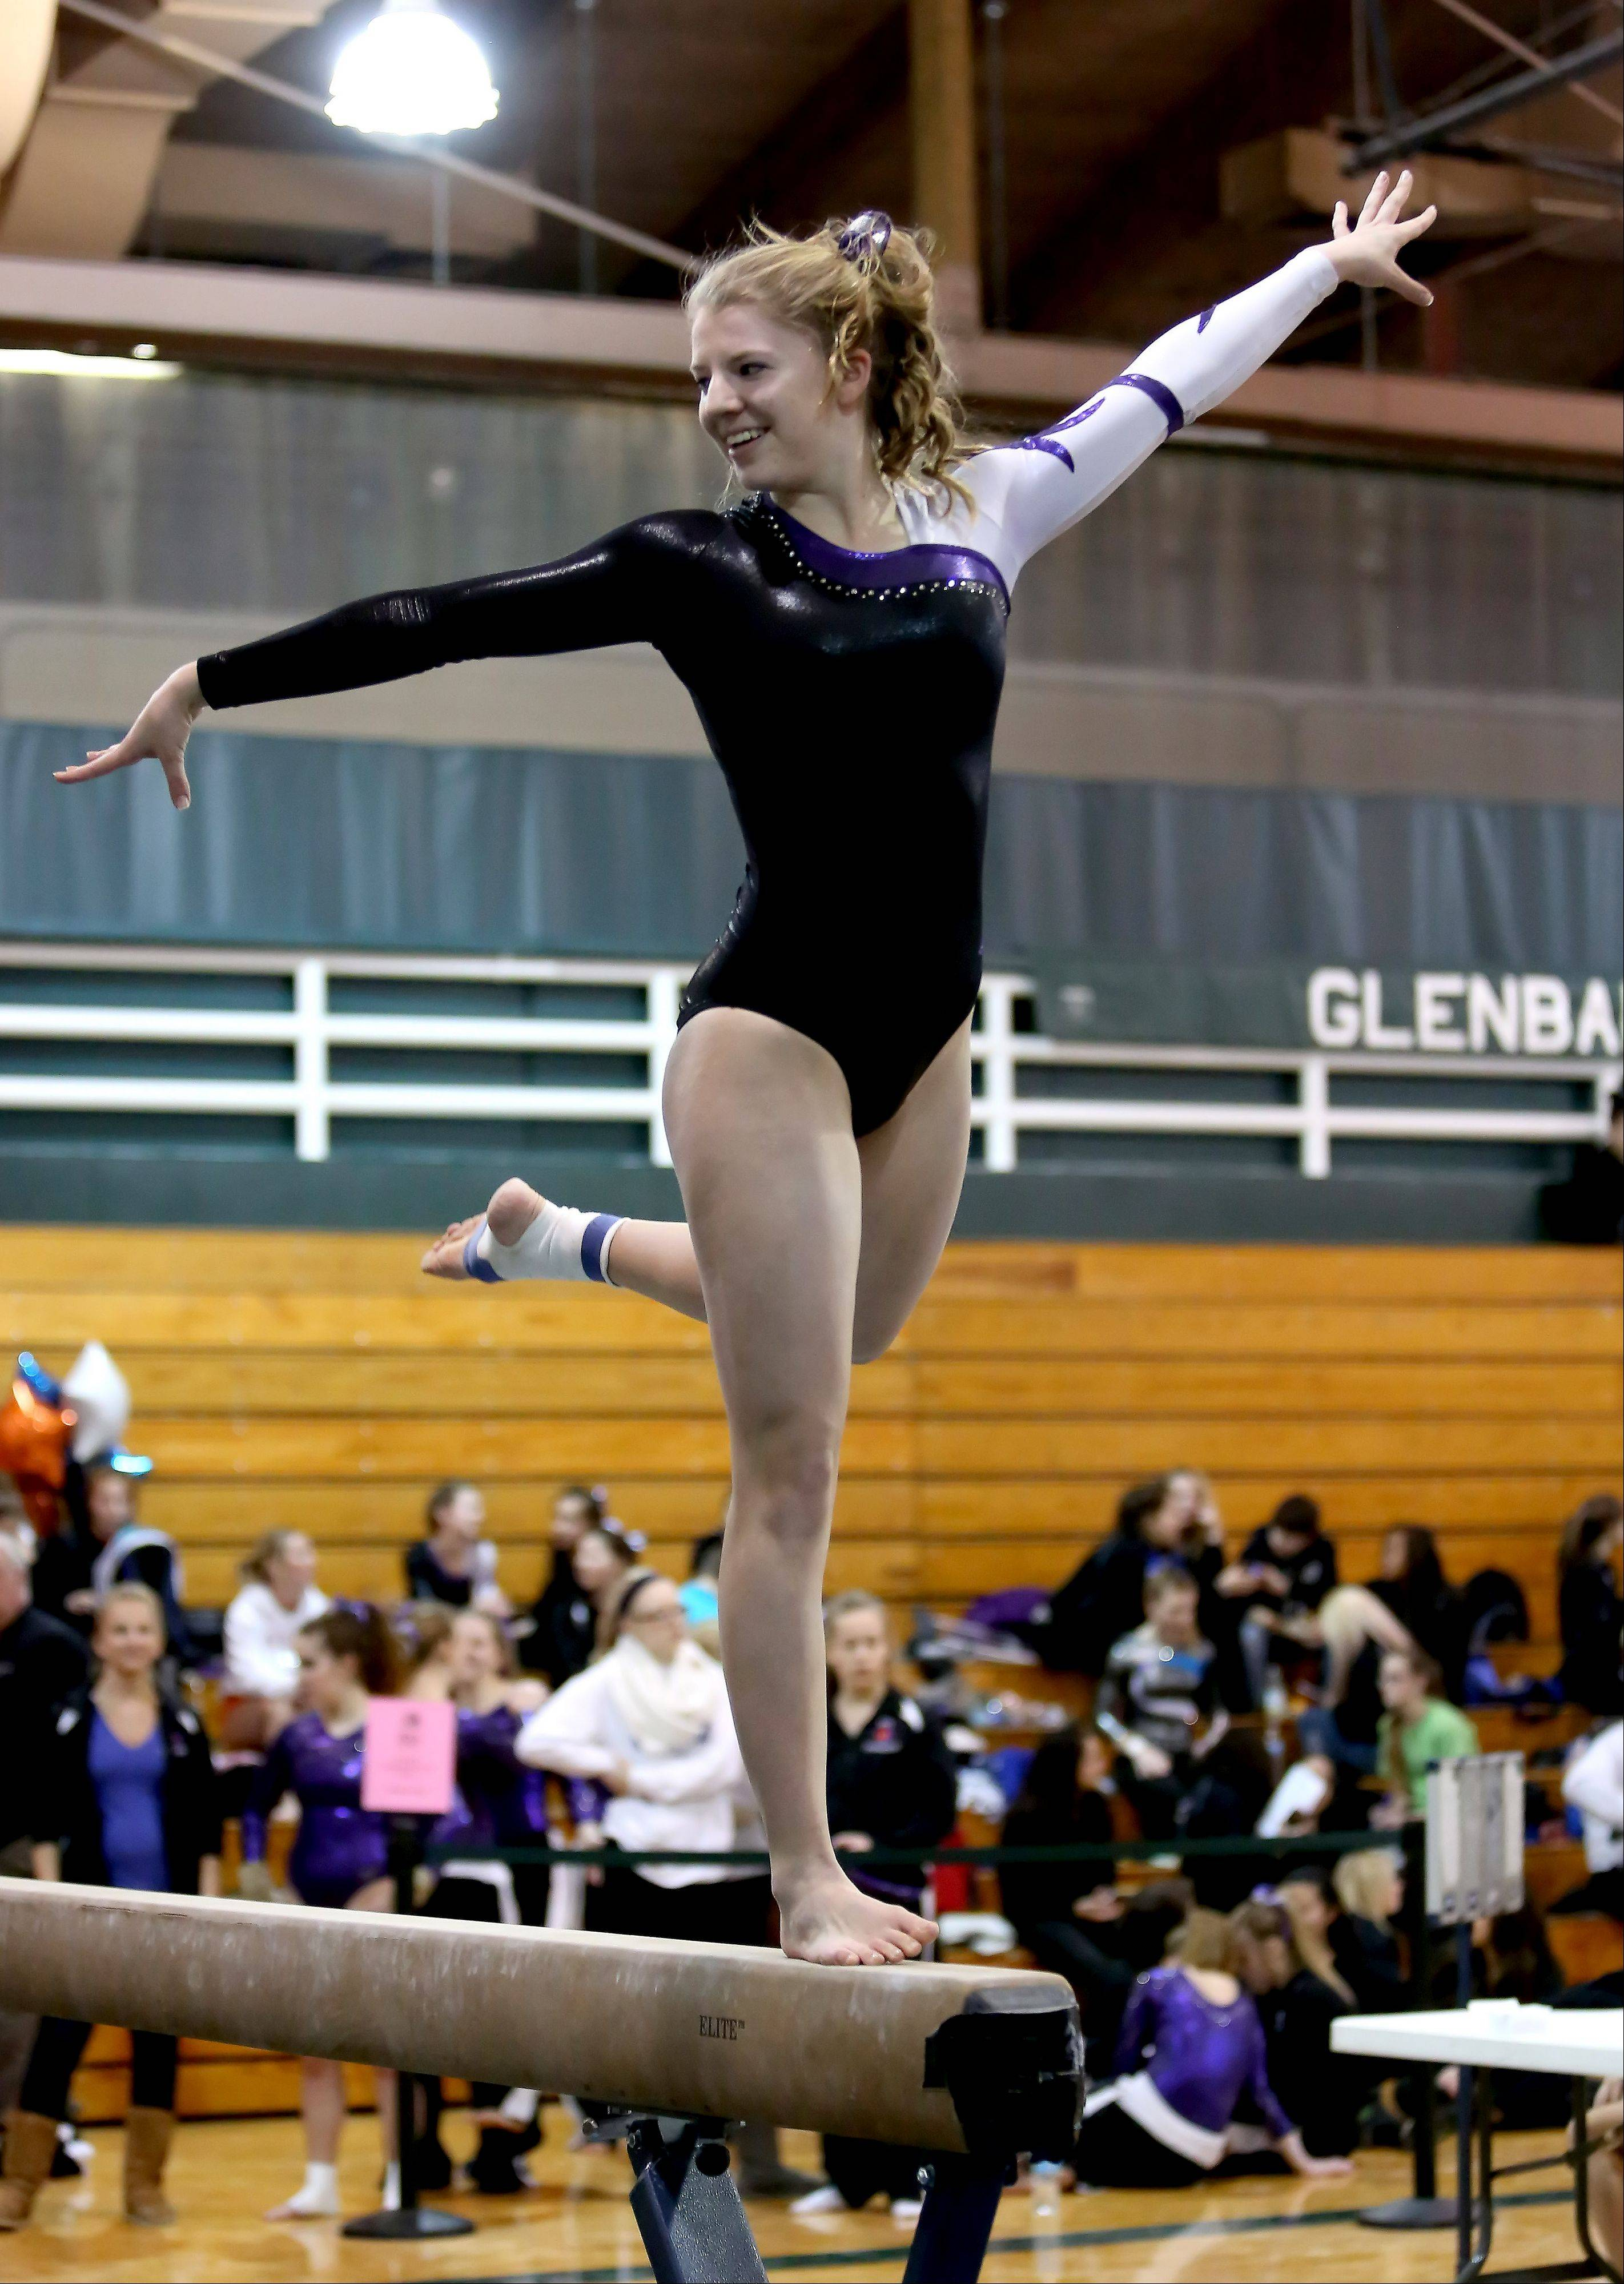 Brianna Mulhearn of Wheaton co-op performs her beam routine at sectional gymnastics at Glenbard West on Tuesday in Glen Ellyn.